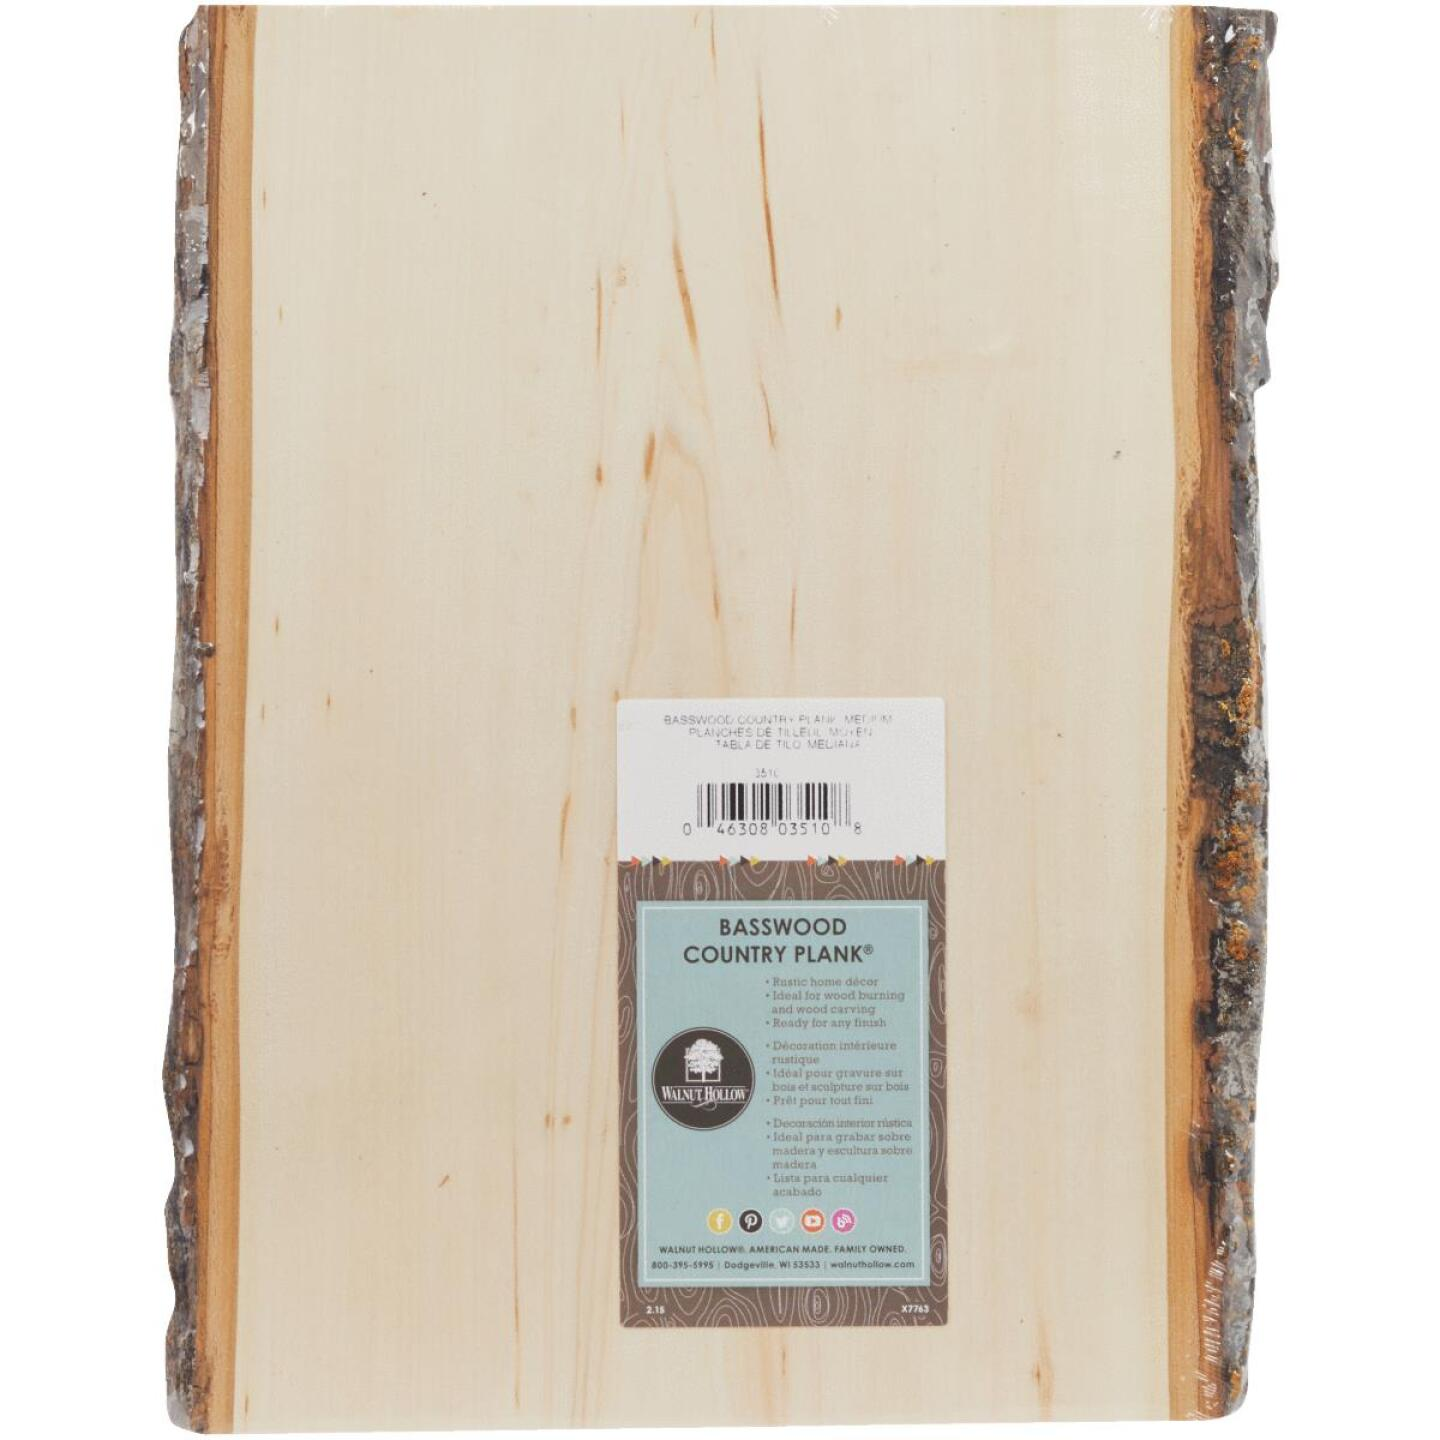 Walnut Hollow Basswood Country Planks 9 to 11 In. W x 13 In. H. Live Edge Plank Image 2